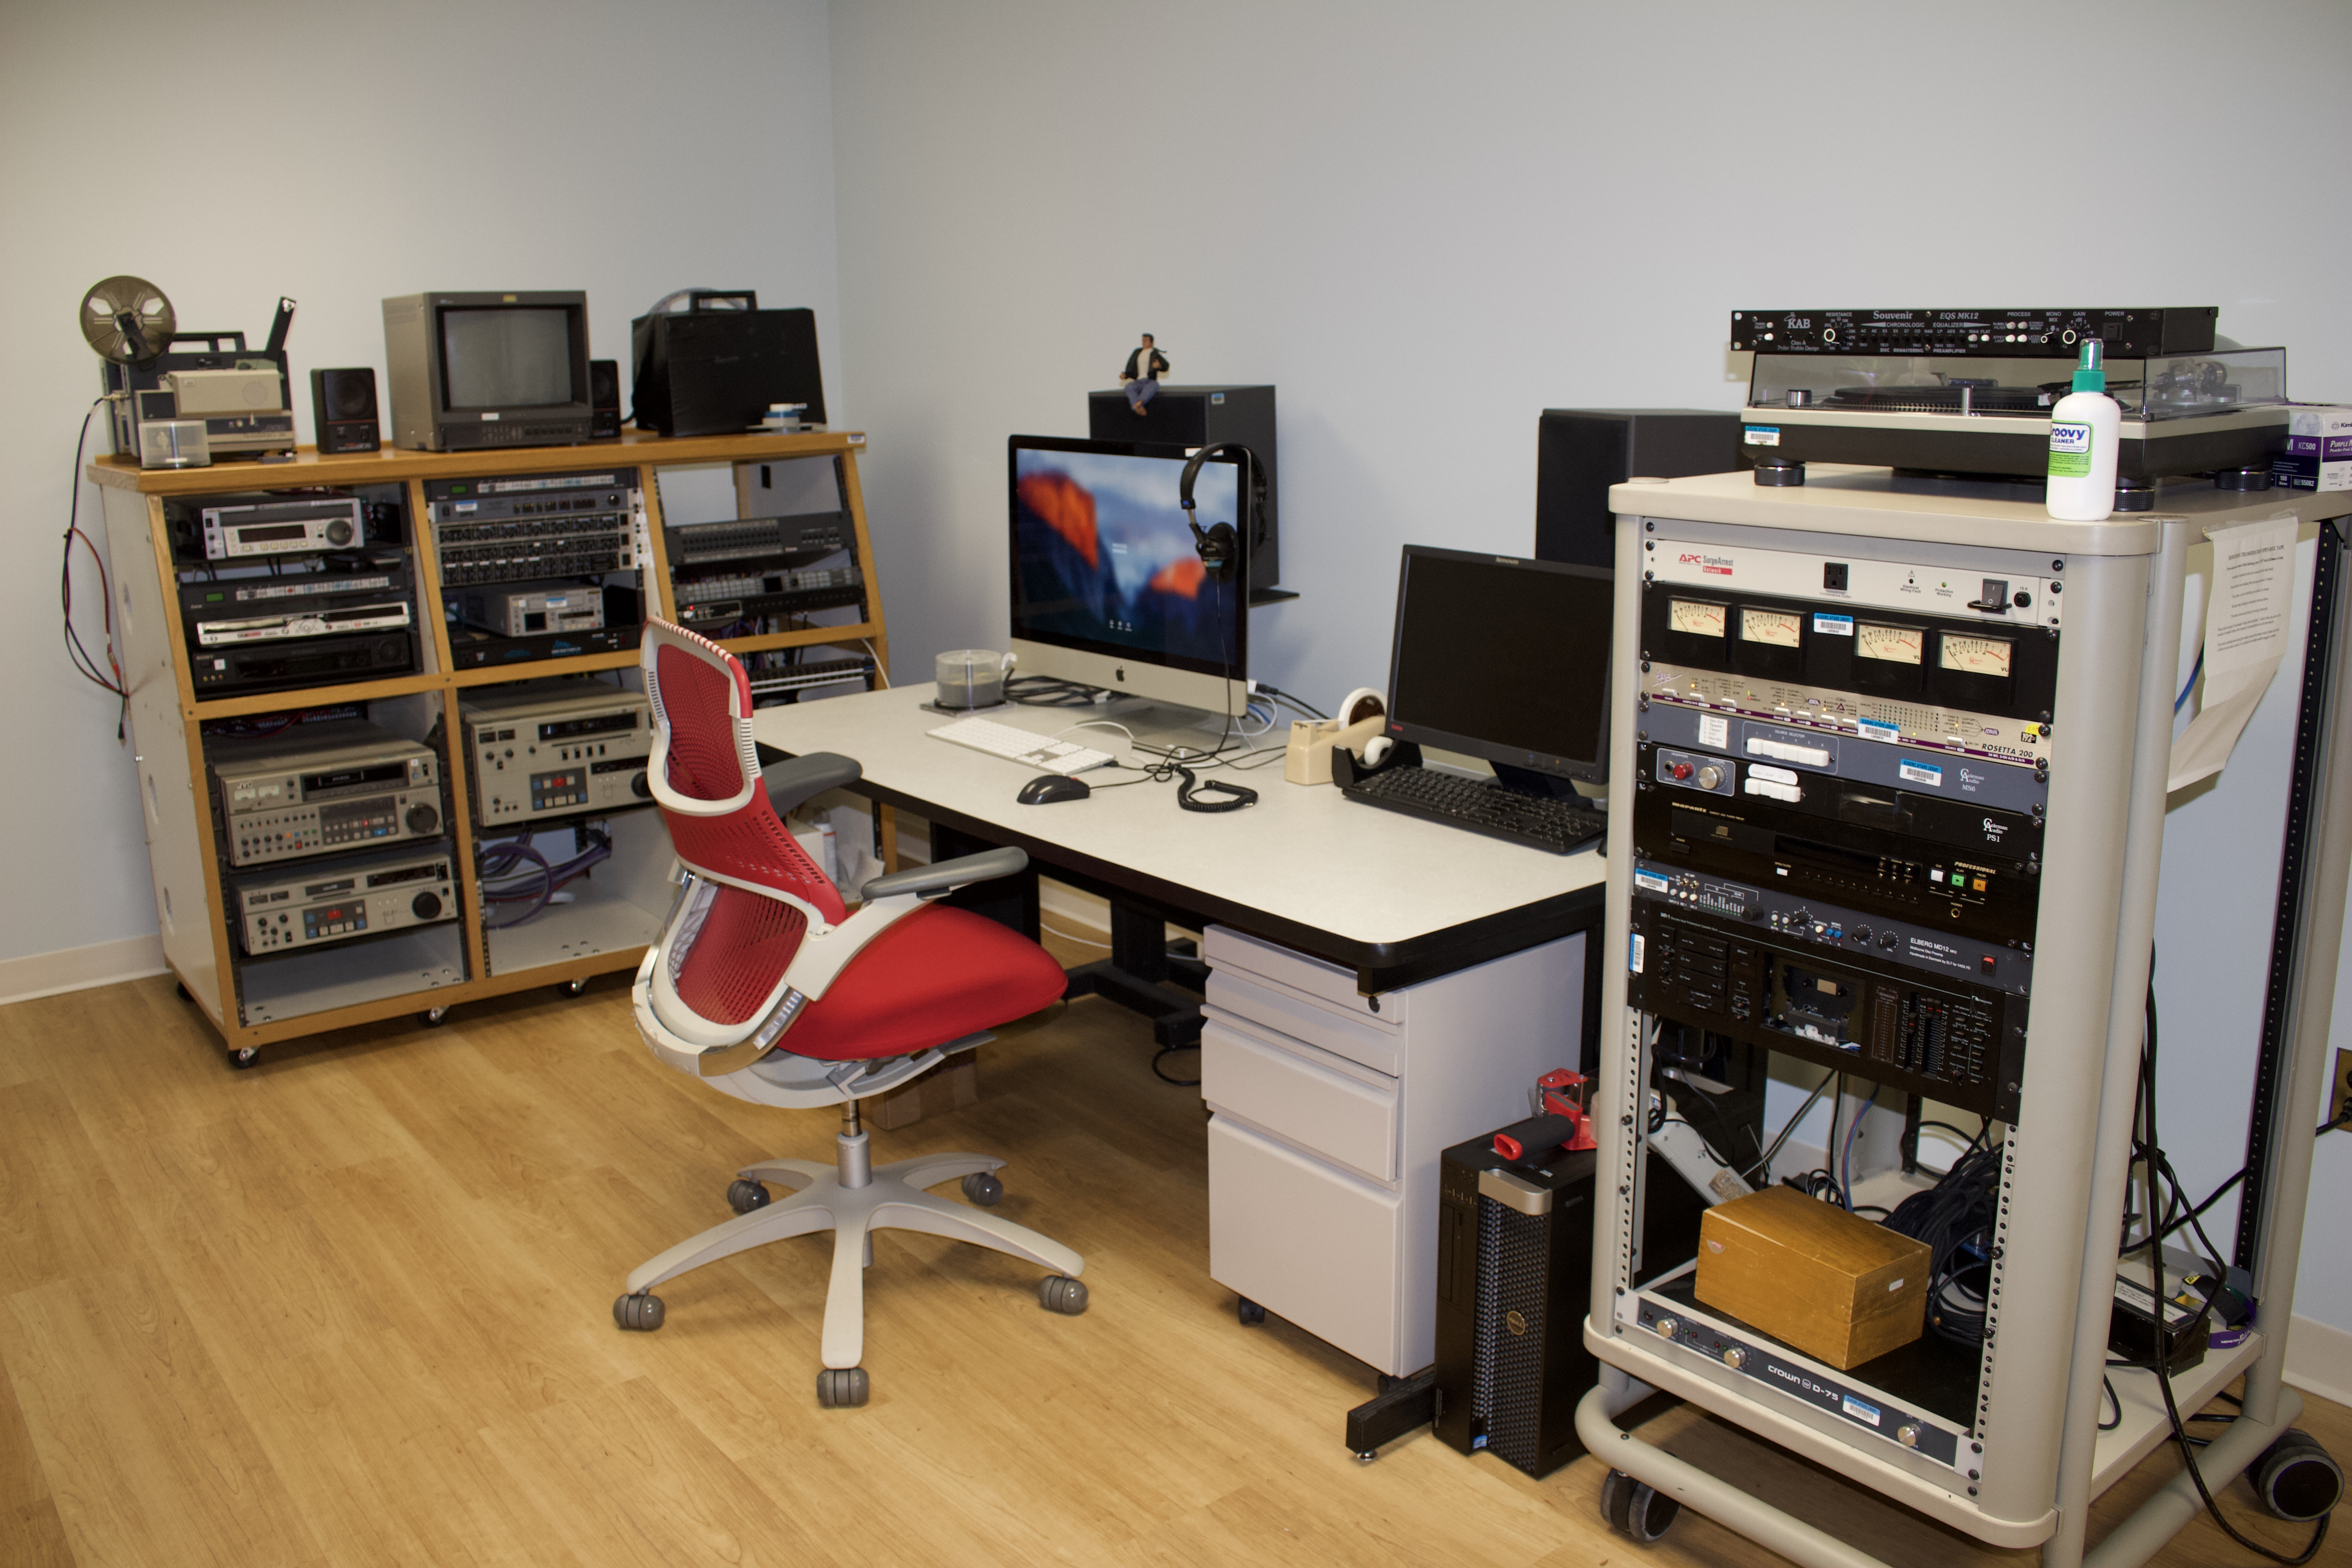 a vertical rack of audio equipment sits next to a table with computers, with a rack of video equipment in the background